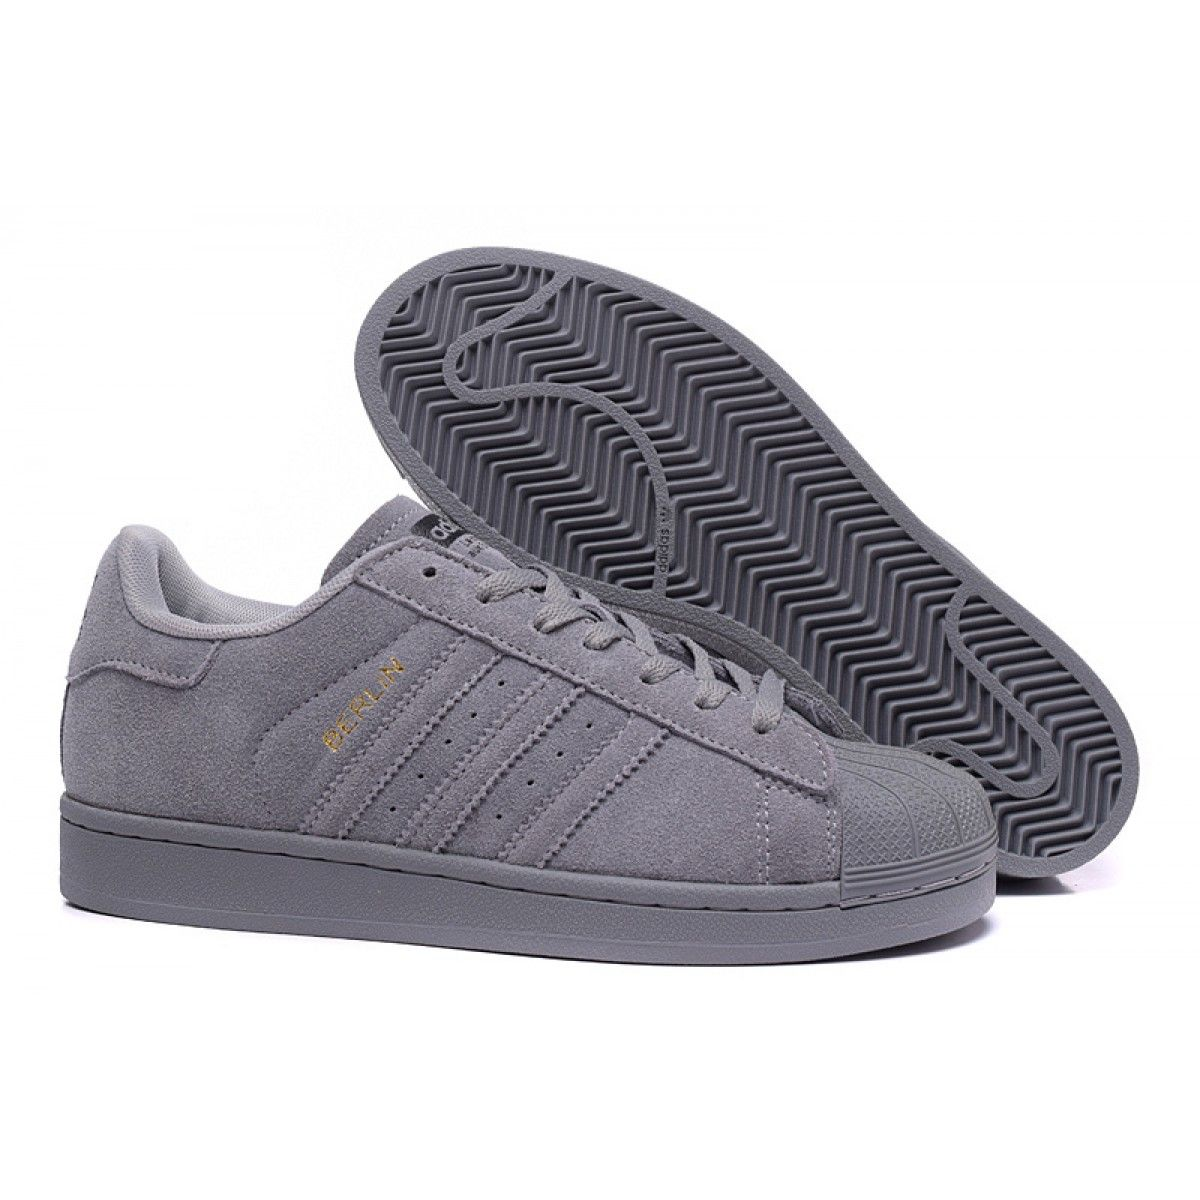 huge selection of a1f16 30224 Adidas Originals Superstar 80s BERLIN Scarpe - Unisex - Grigio